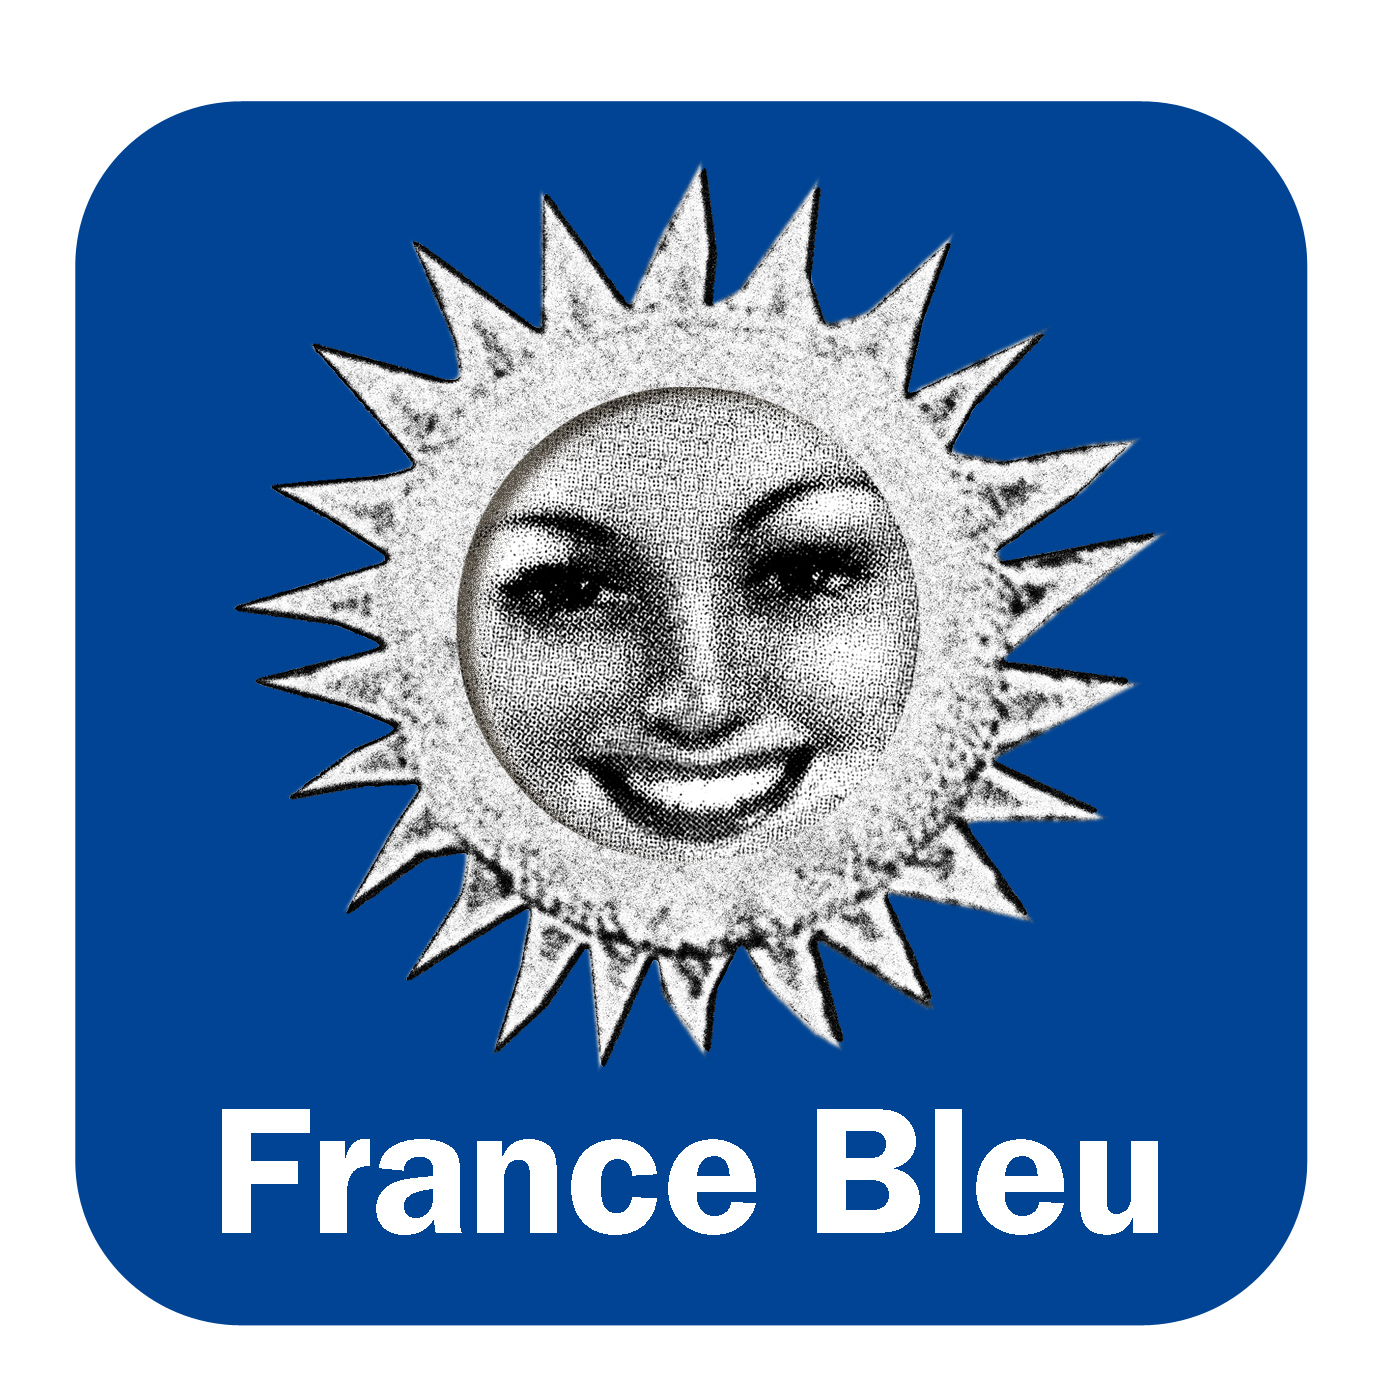 L'horoscope de Martin France Bleu